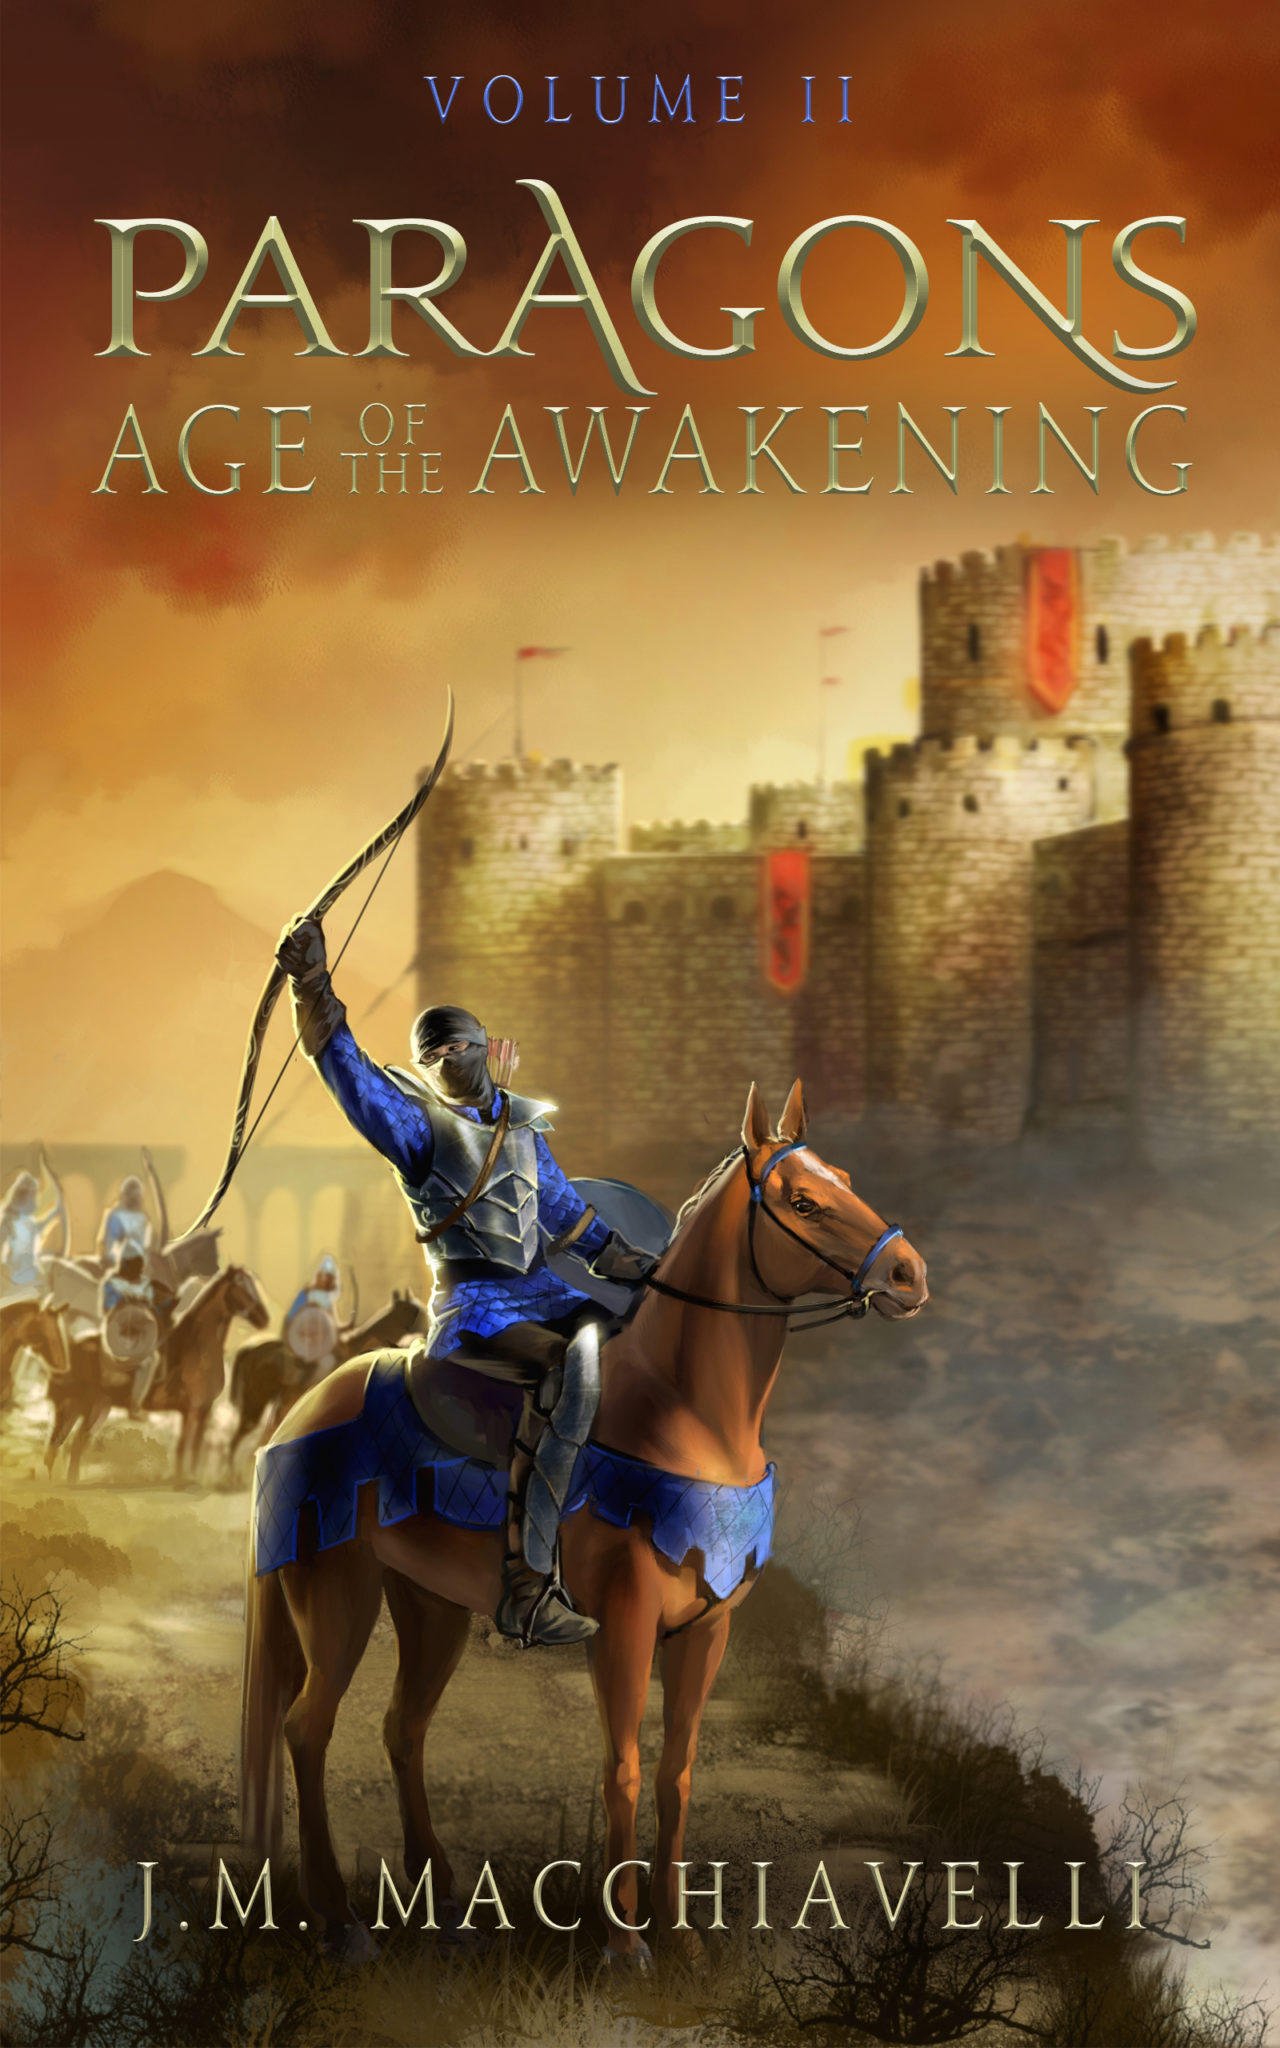 Paragons: Age of the Awakening Volume II by J.M. Macchiavelli